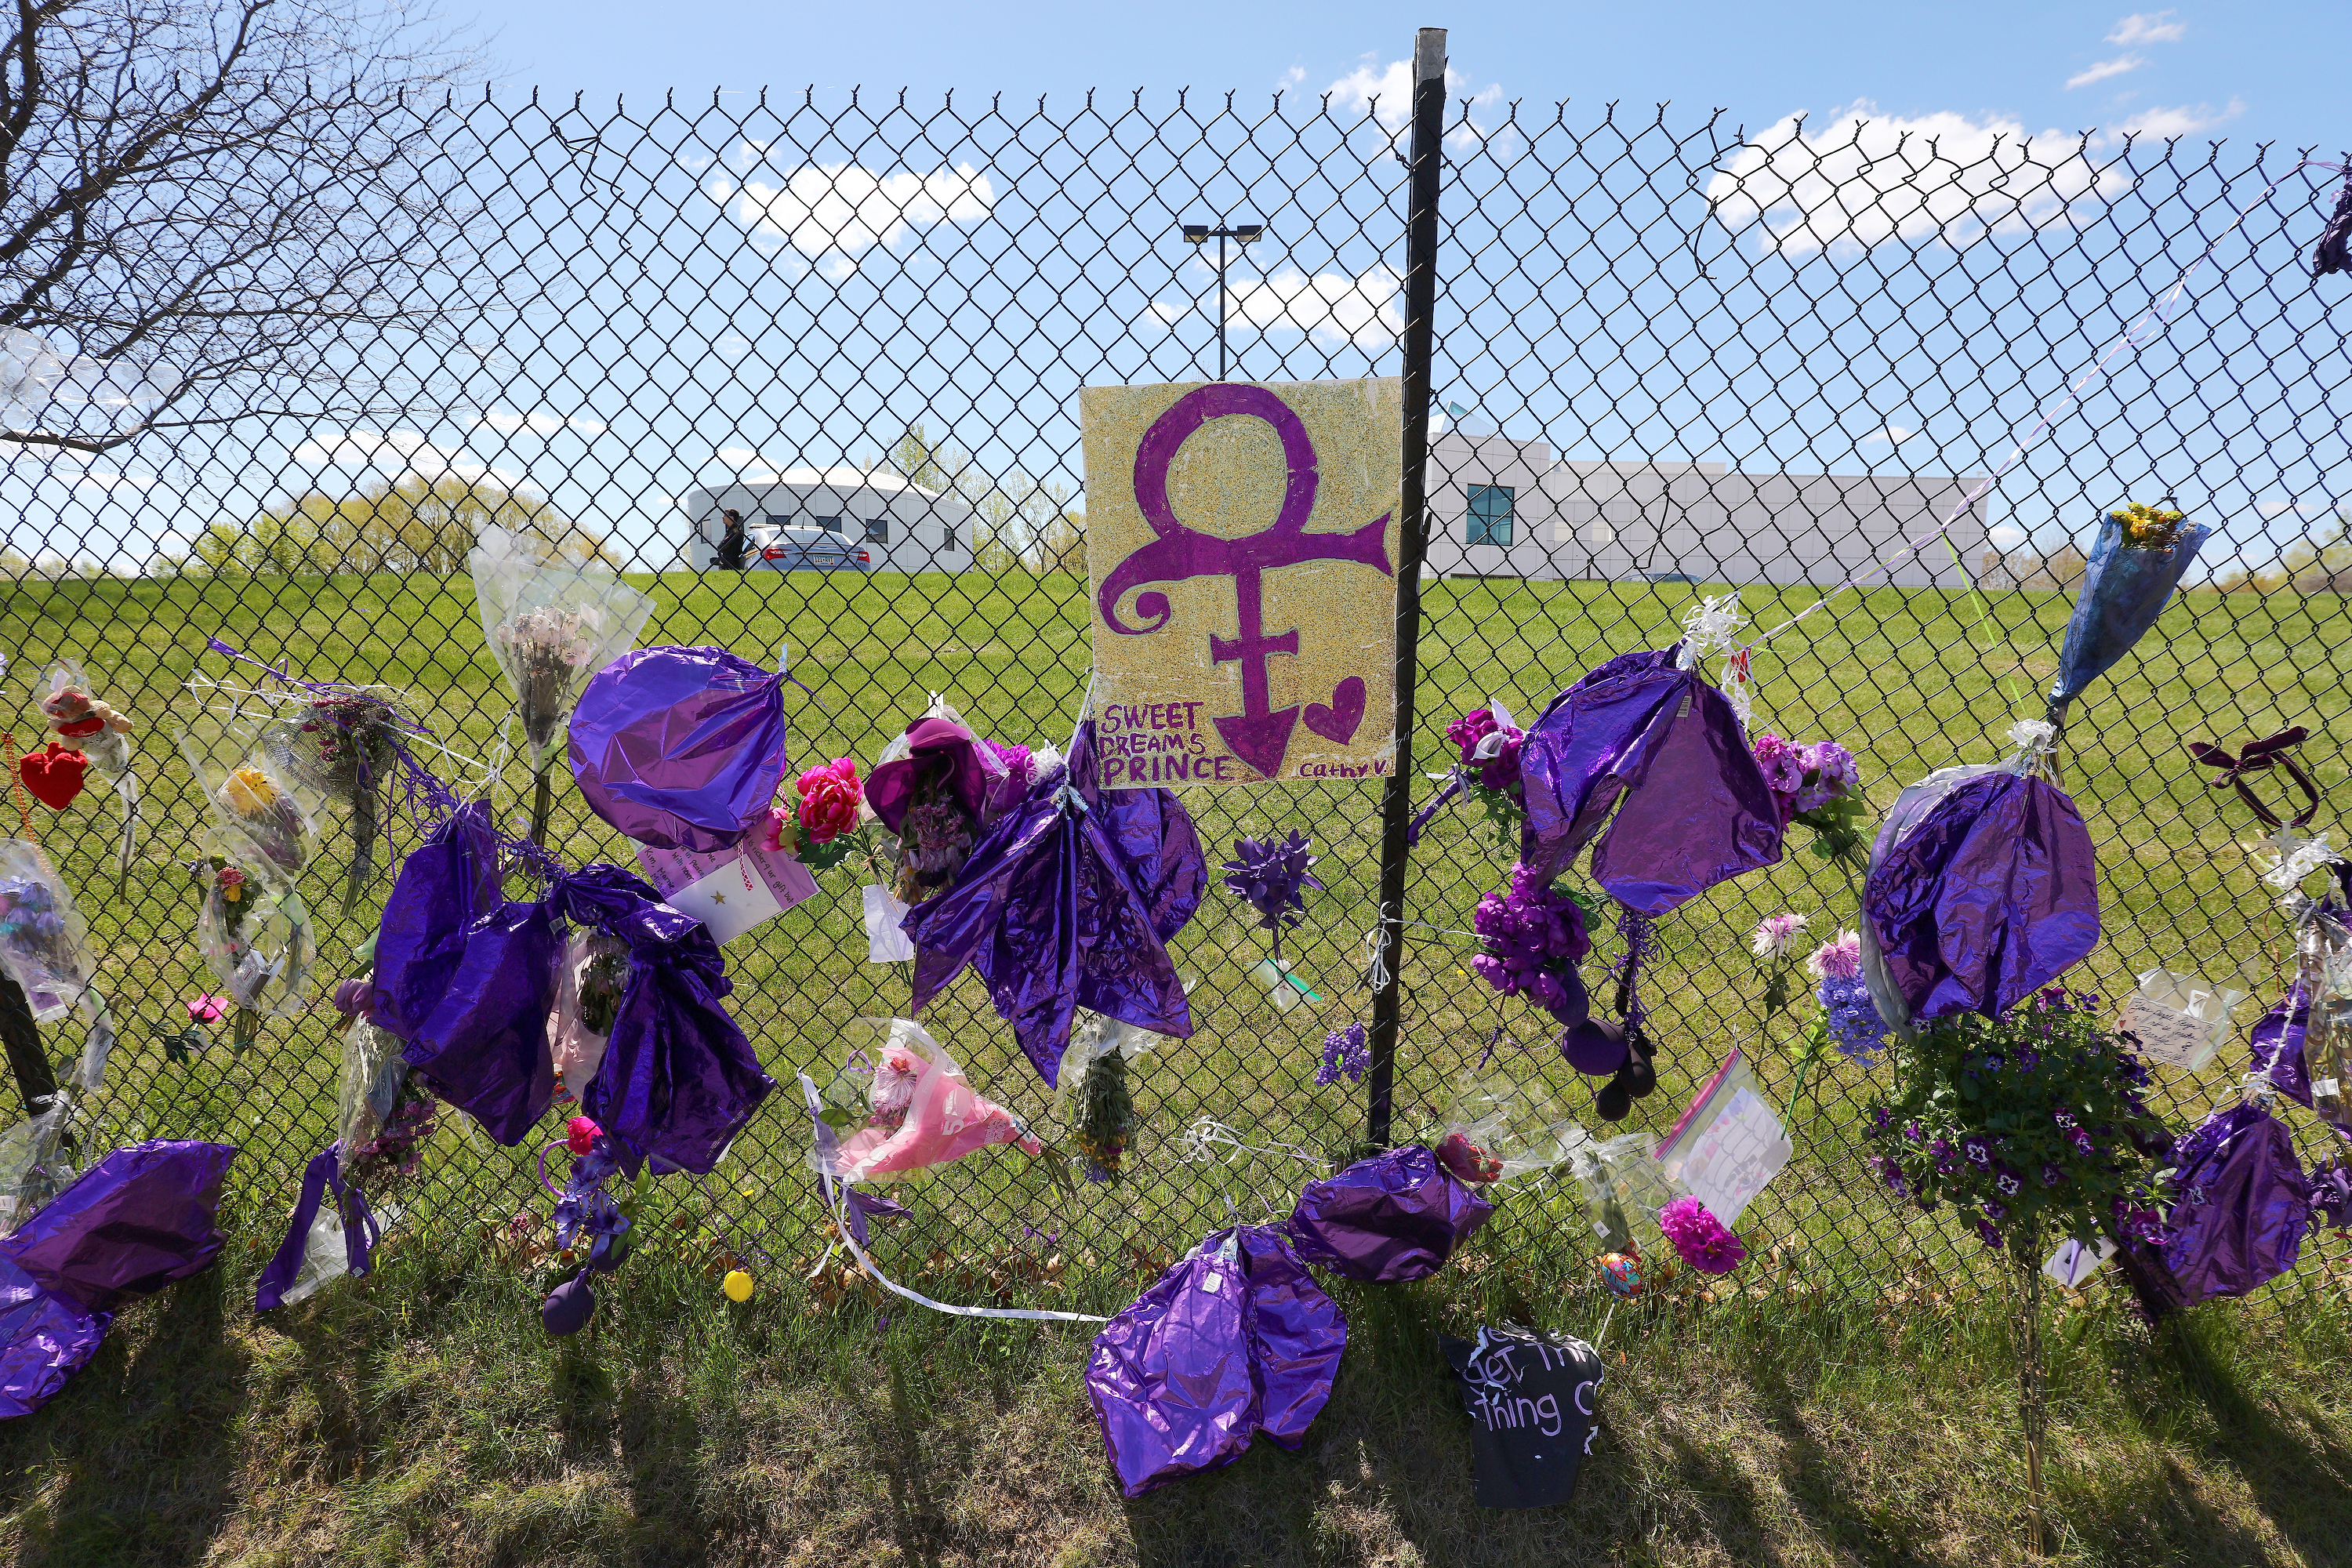 Tributes and memorials dedicated to Prince on the fence that surrounds Paisley Park on May 2, 2016 in Chaska, Minnesota.